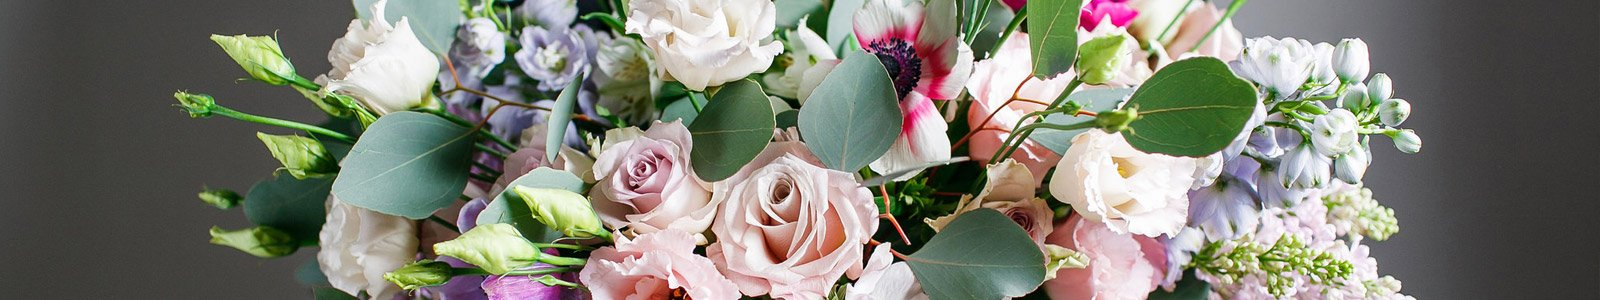 Fresh Blooms White Rock Florist Same Day Luxury Flowers Delivery